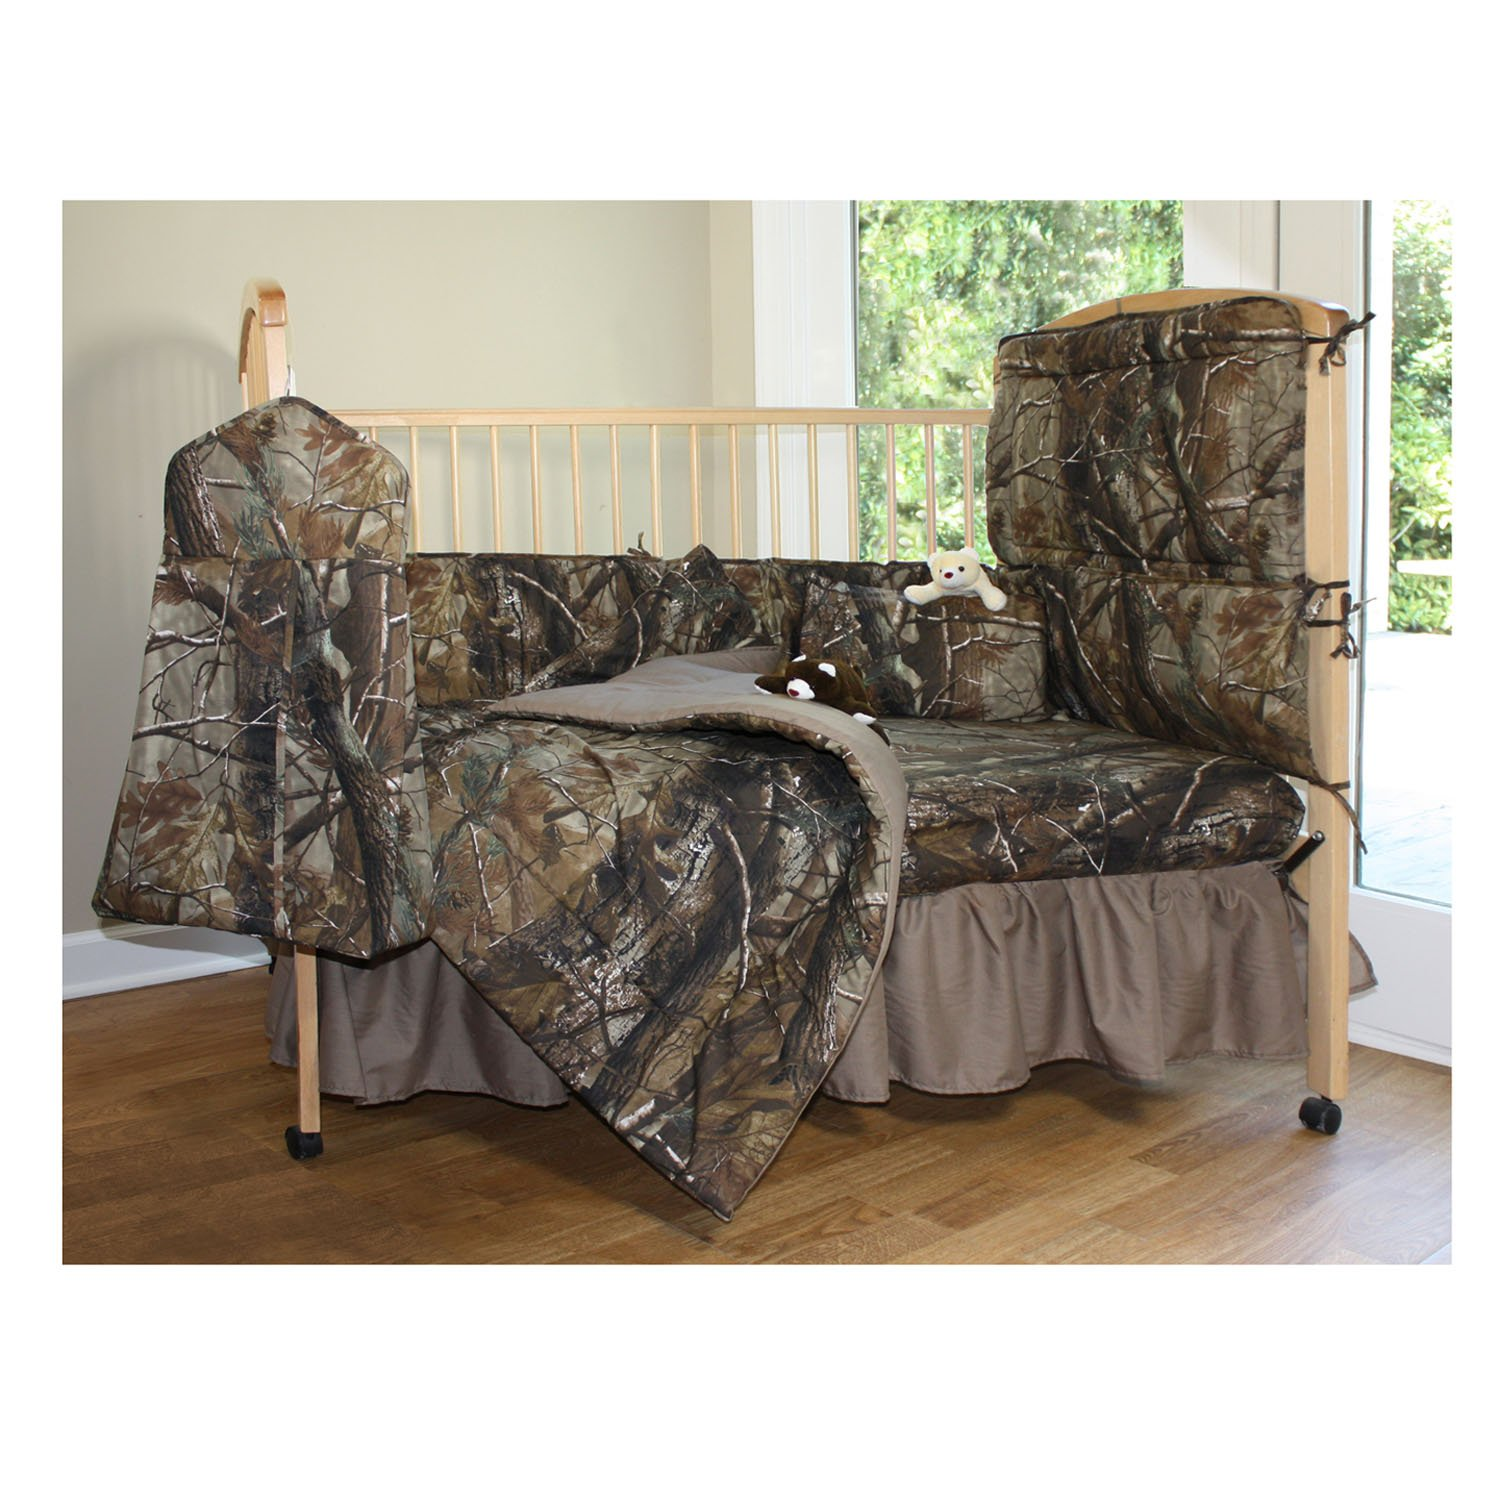 Camo toddler bed sets - Camo Toddler Bed Sets